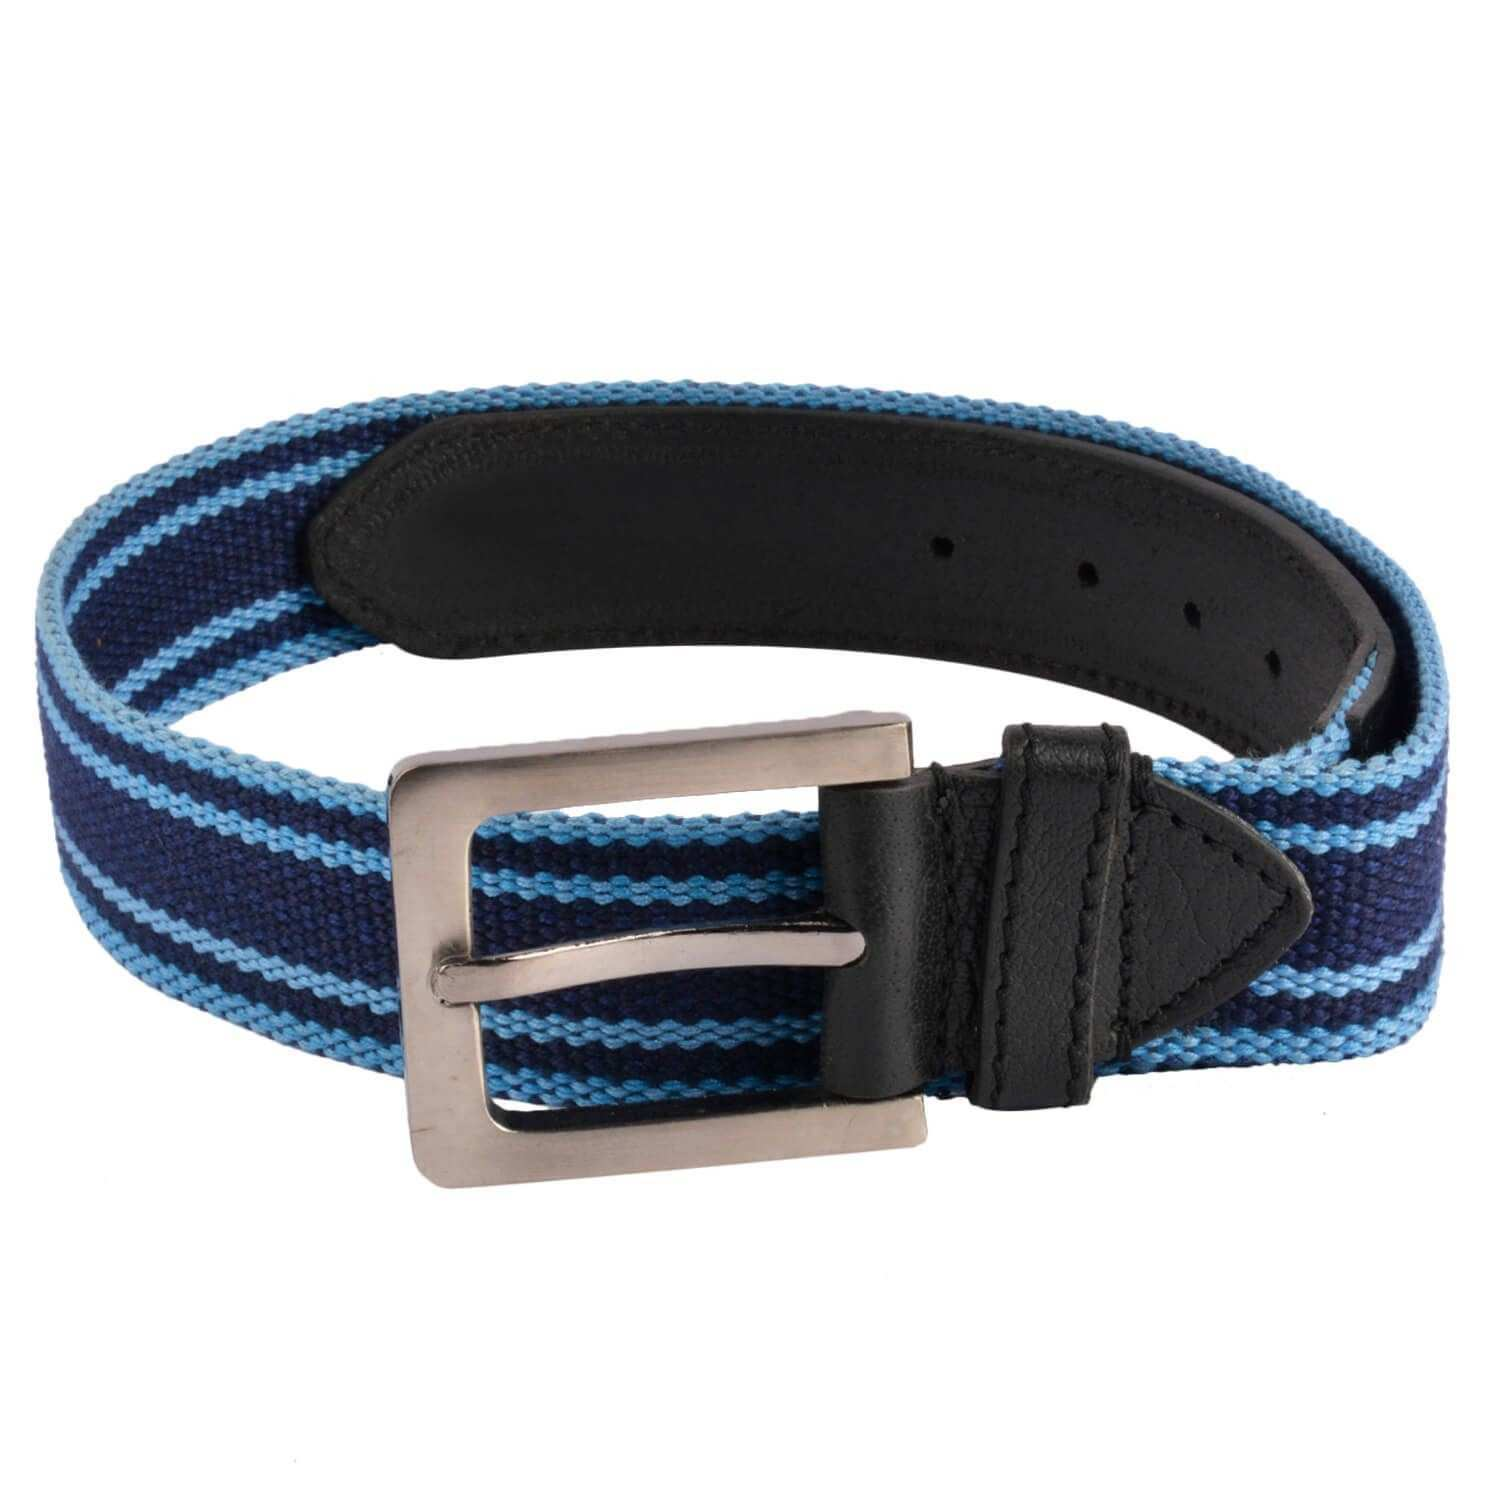 Baluchi Black Canvas Casual Belts Buy line at Low Price in India